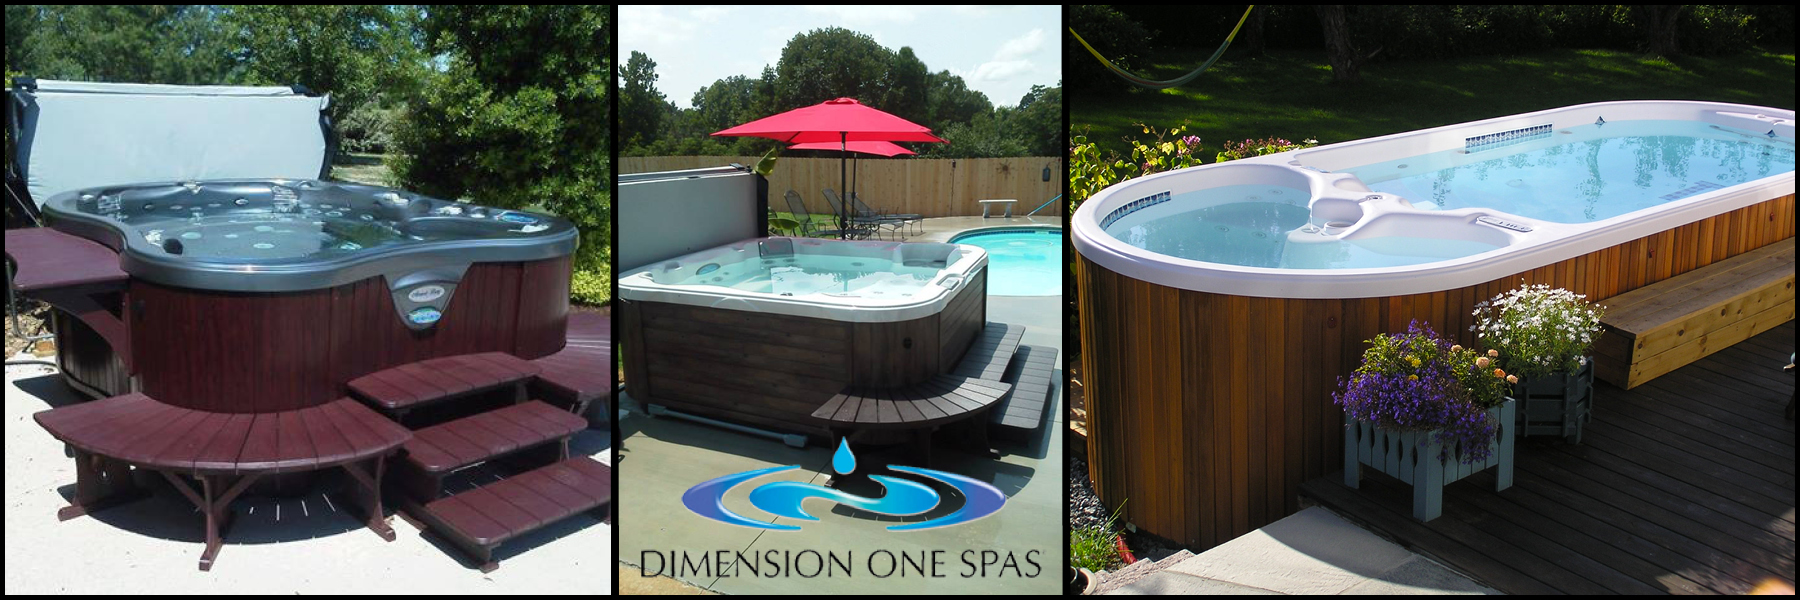 Lighthouse Spas & Pools- Dimension One Spa